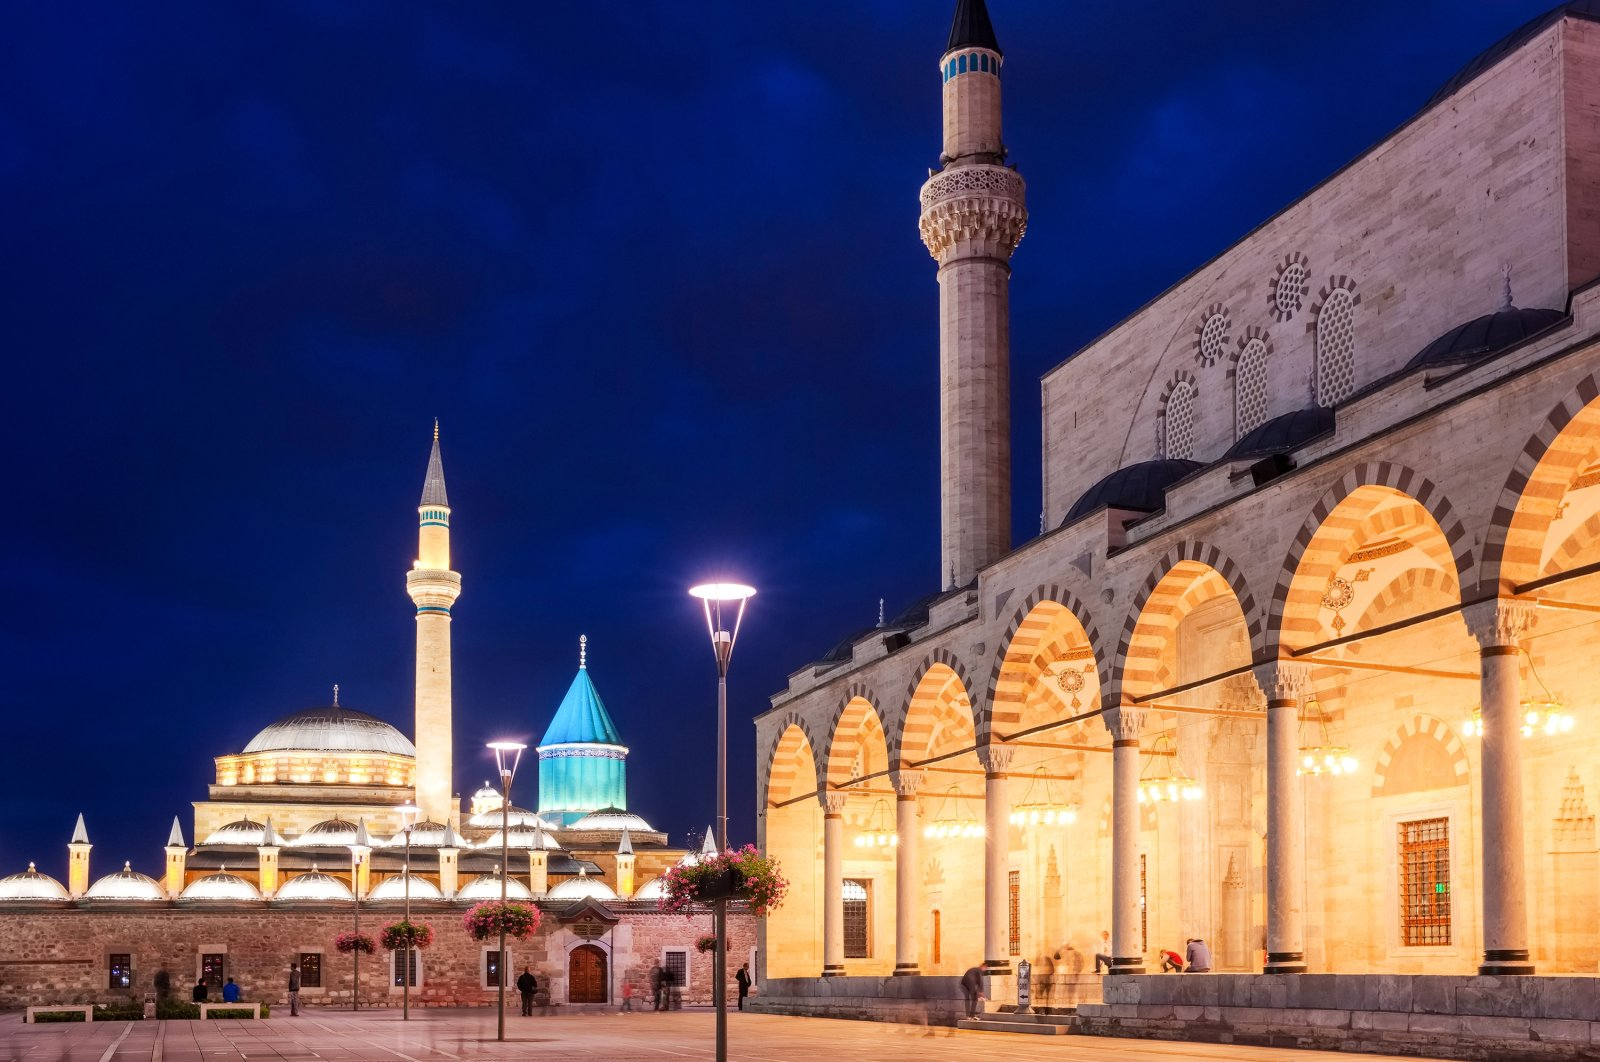 The central square of the old town of Konya with the Mevlana Museum in the background and Selimiye Mosque at night. (Shutterstock Photo)